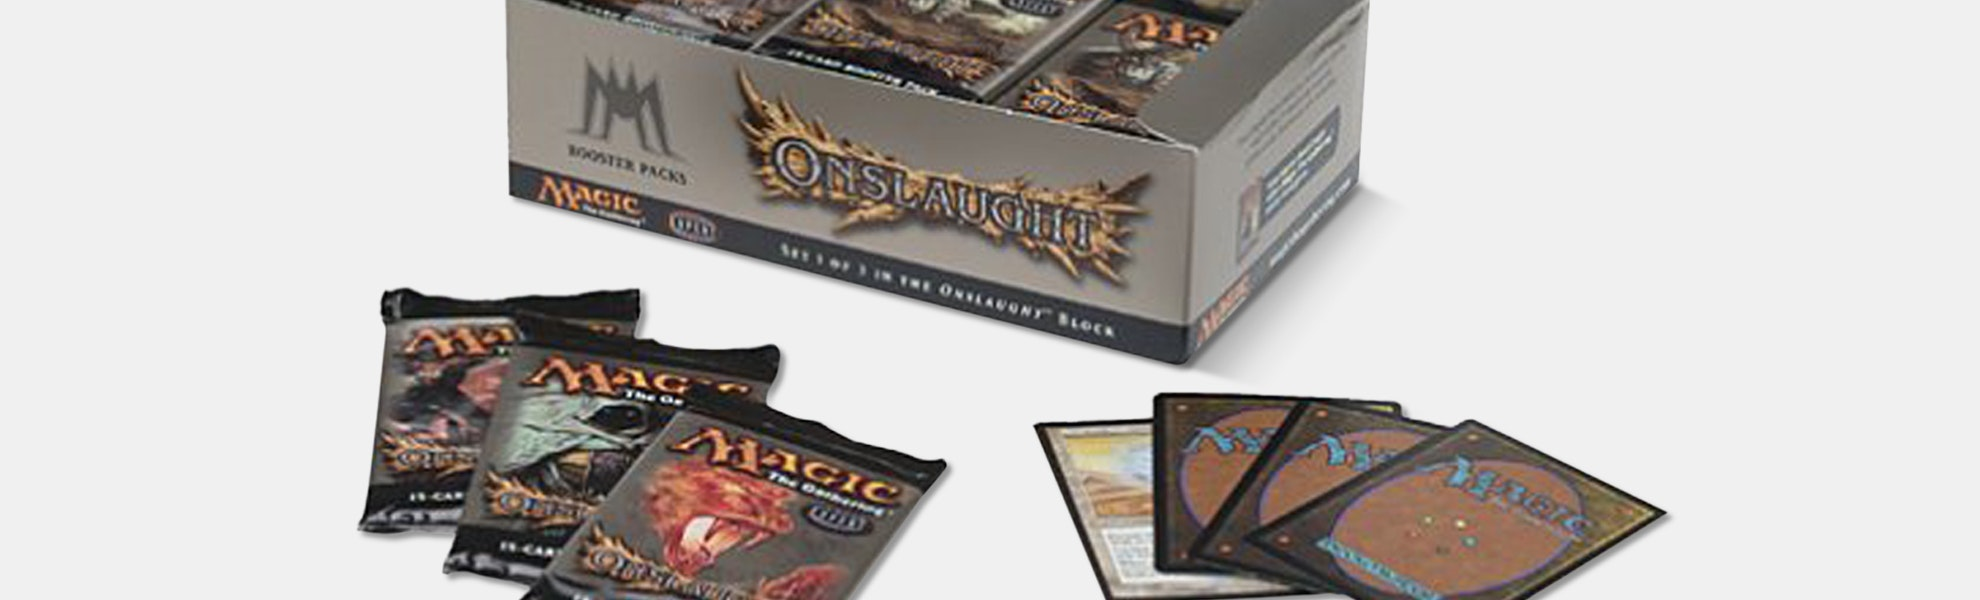 Onslaught Booster Box